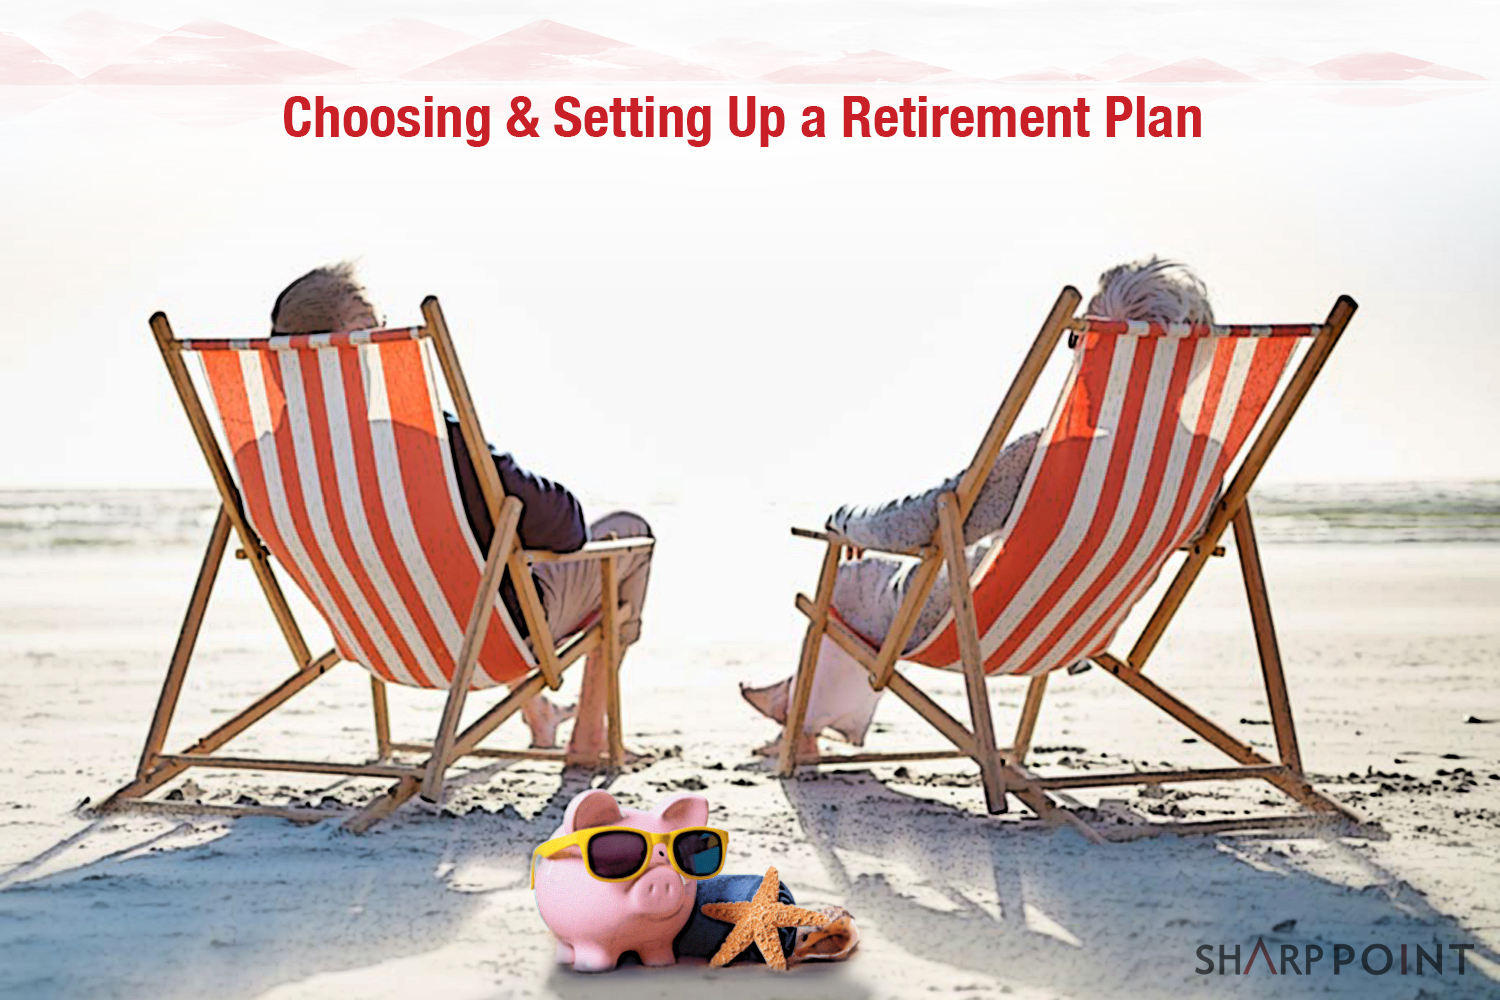 Choosing-&-Setting-Up-a-Retirement-Plan.jpg